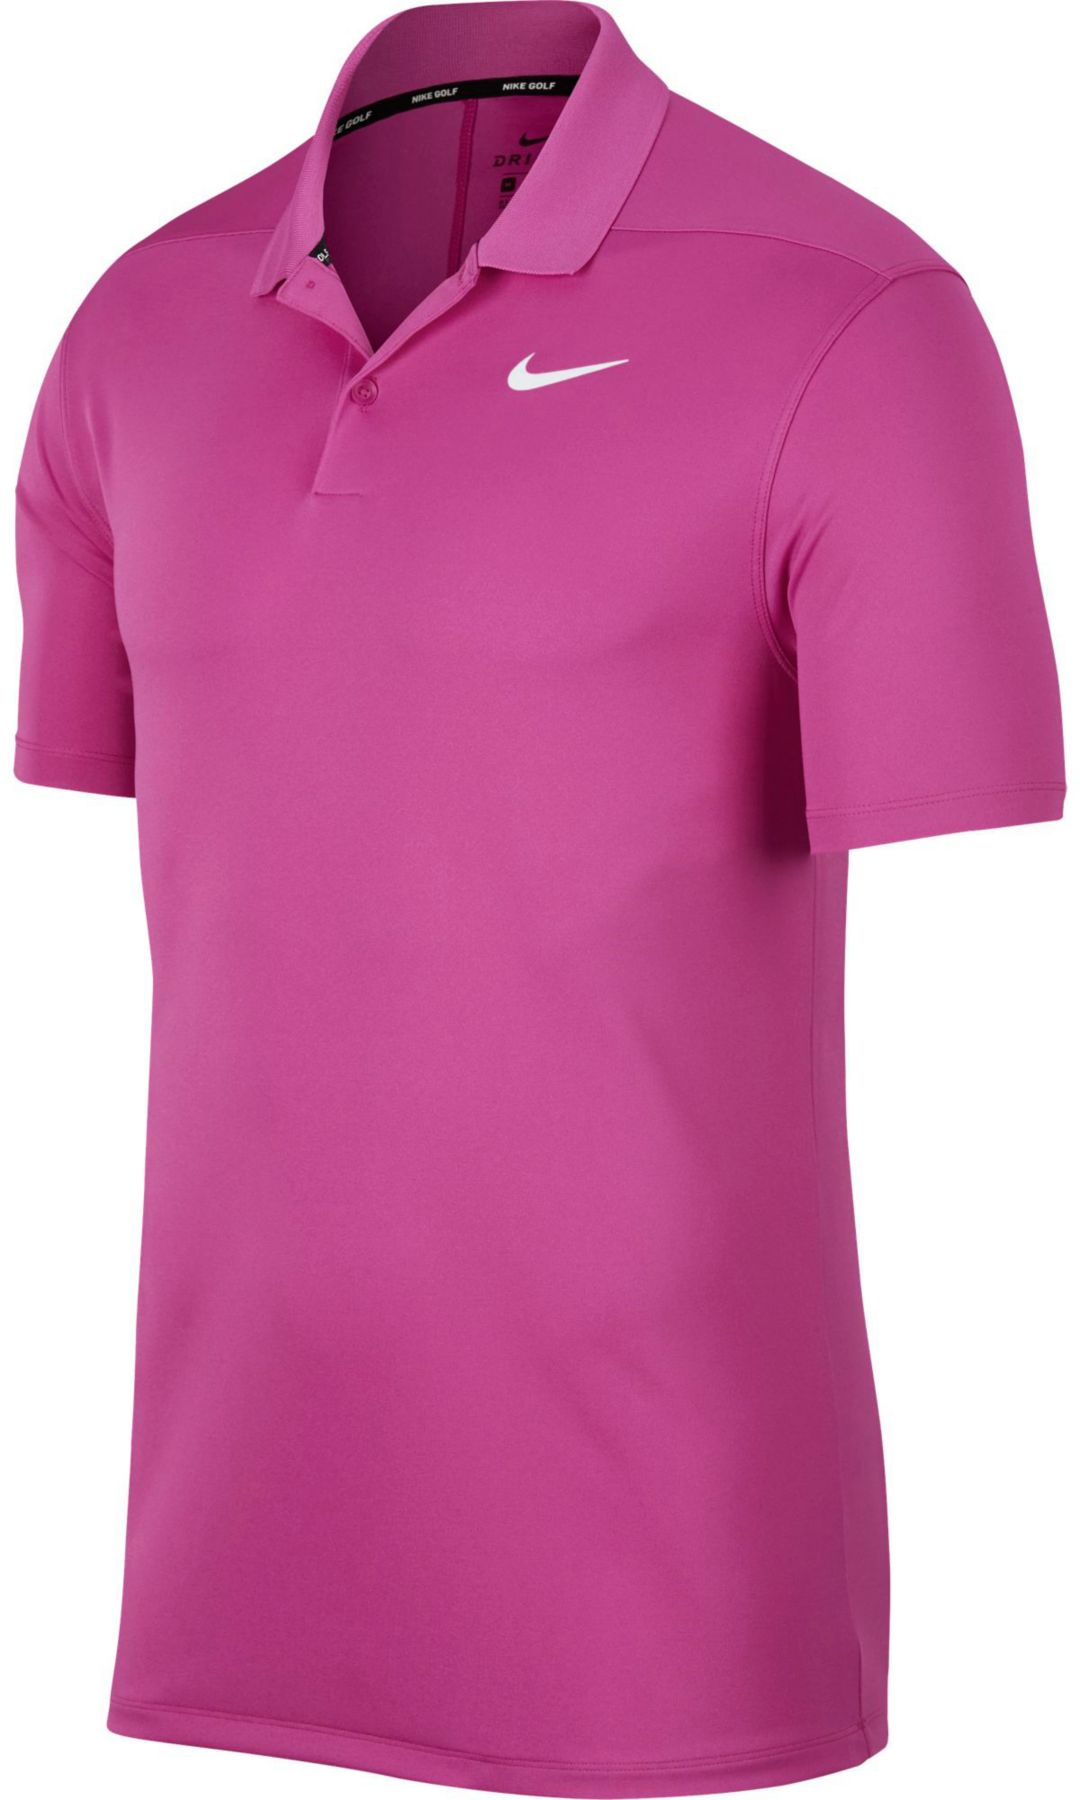 c0f60973a Nike Men s Solid Dry Victory Golf Polo 1